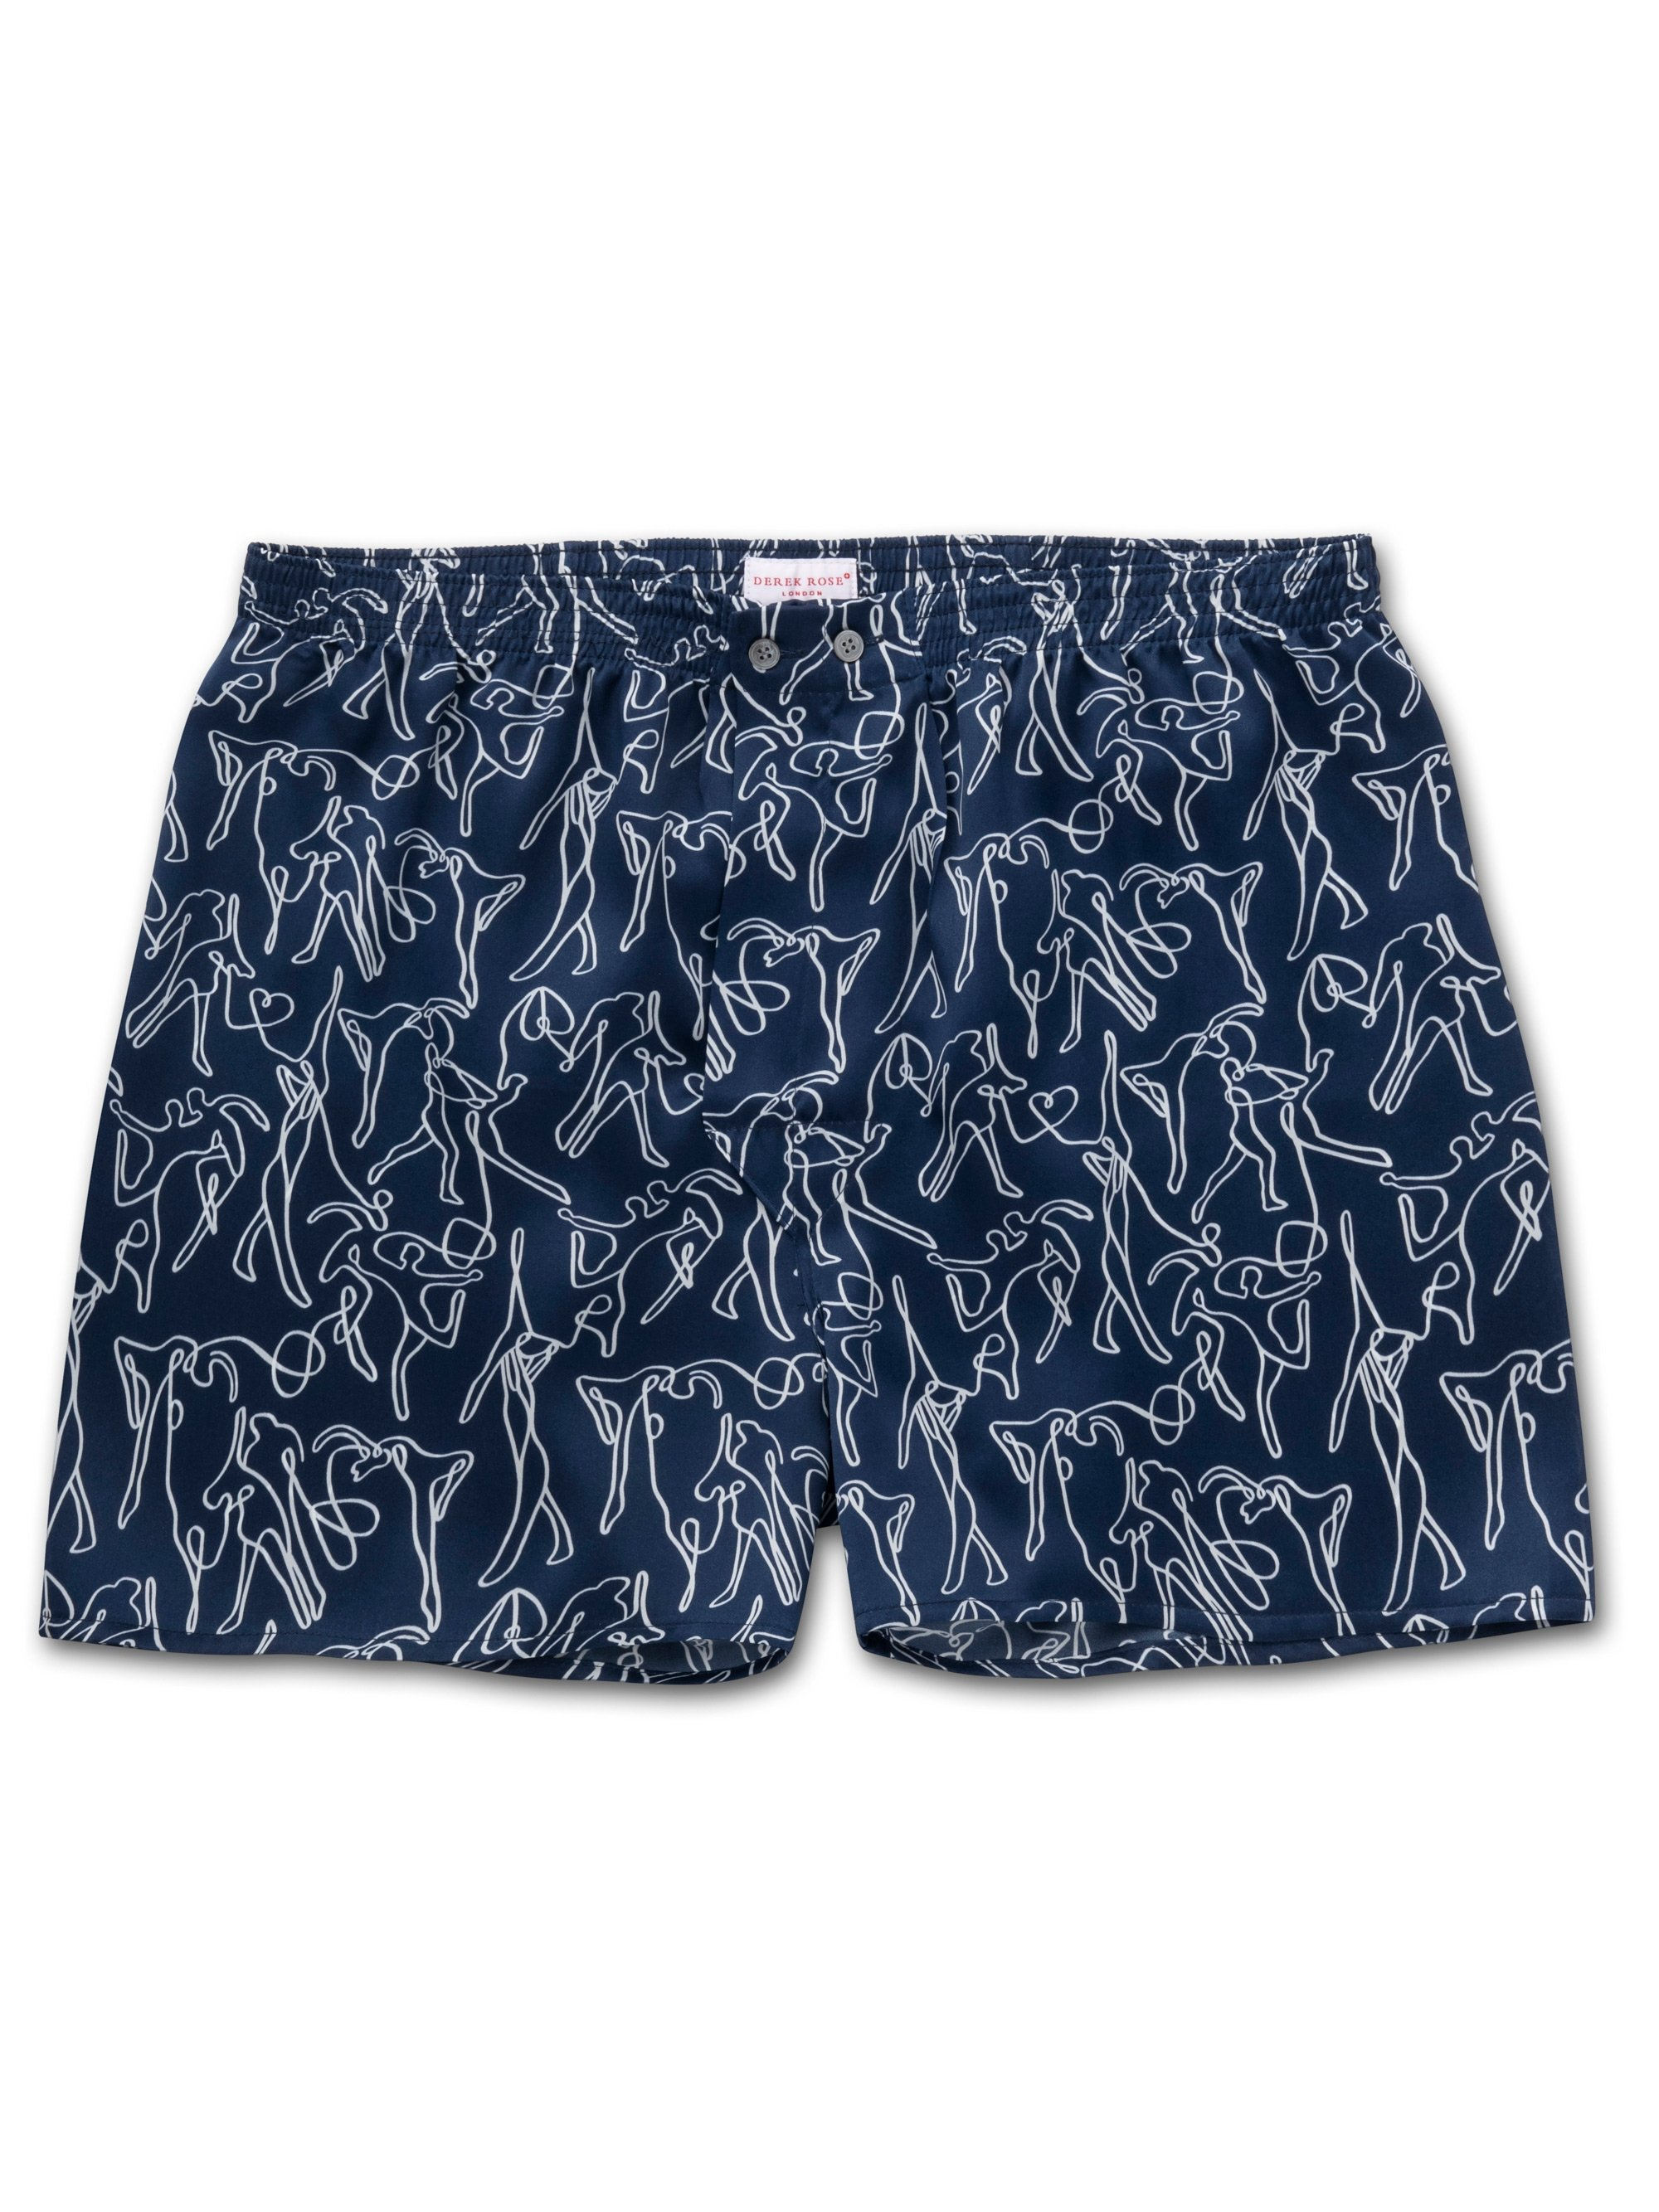 Men's Classic Fit Boxer Shorts Brindisi 59 Pure Silk Satin Navy